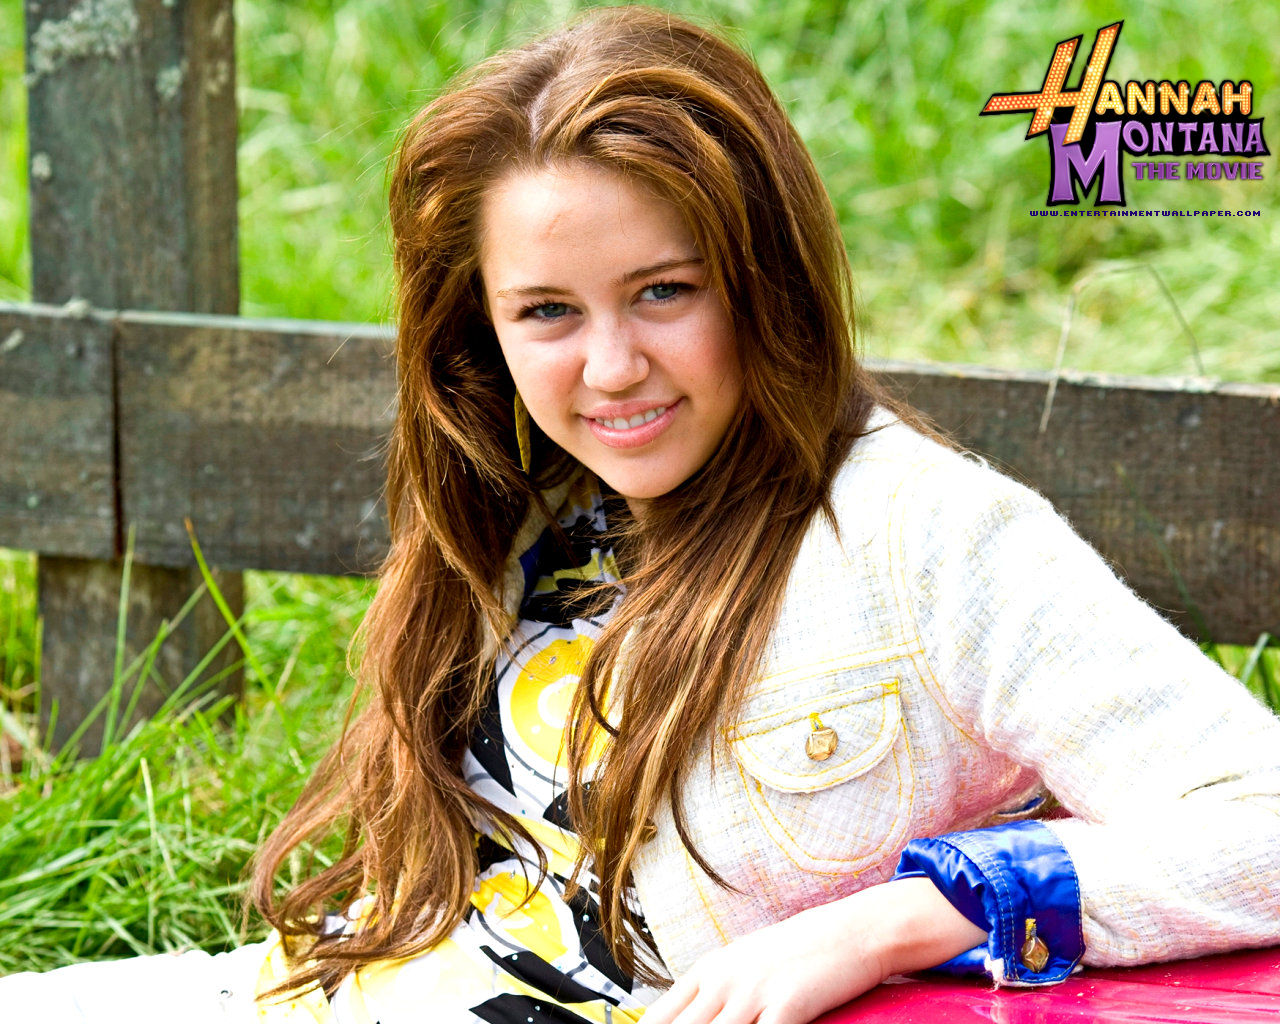 http://4.bp.blogspot.com/-NlRje4TwC9g/UDTfo9TAx5I/AAAAAAAAW4Y/fipiyfWtXXM/s1600/hannah_montana_the_movie08.jpg